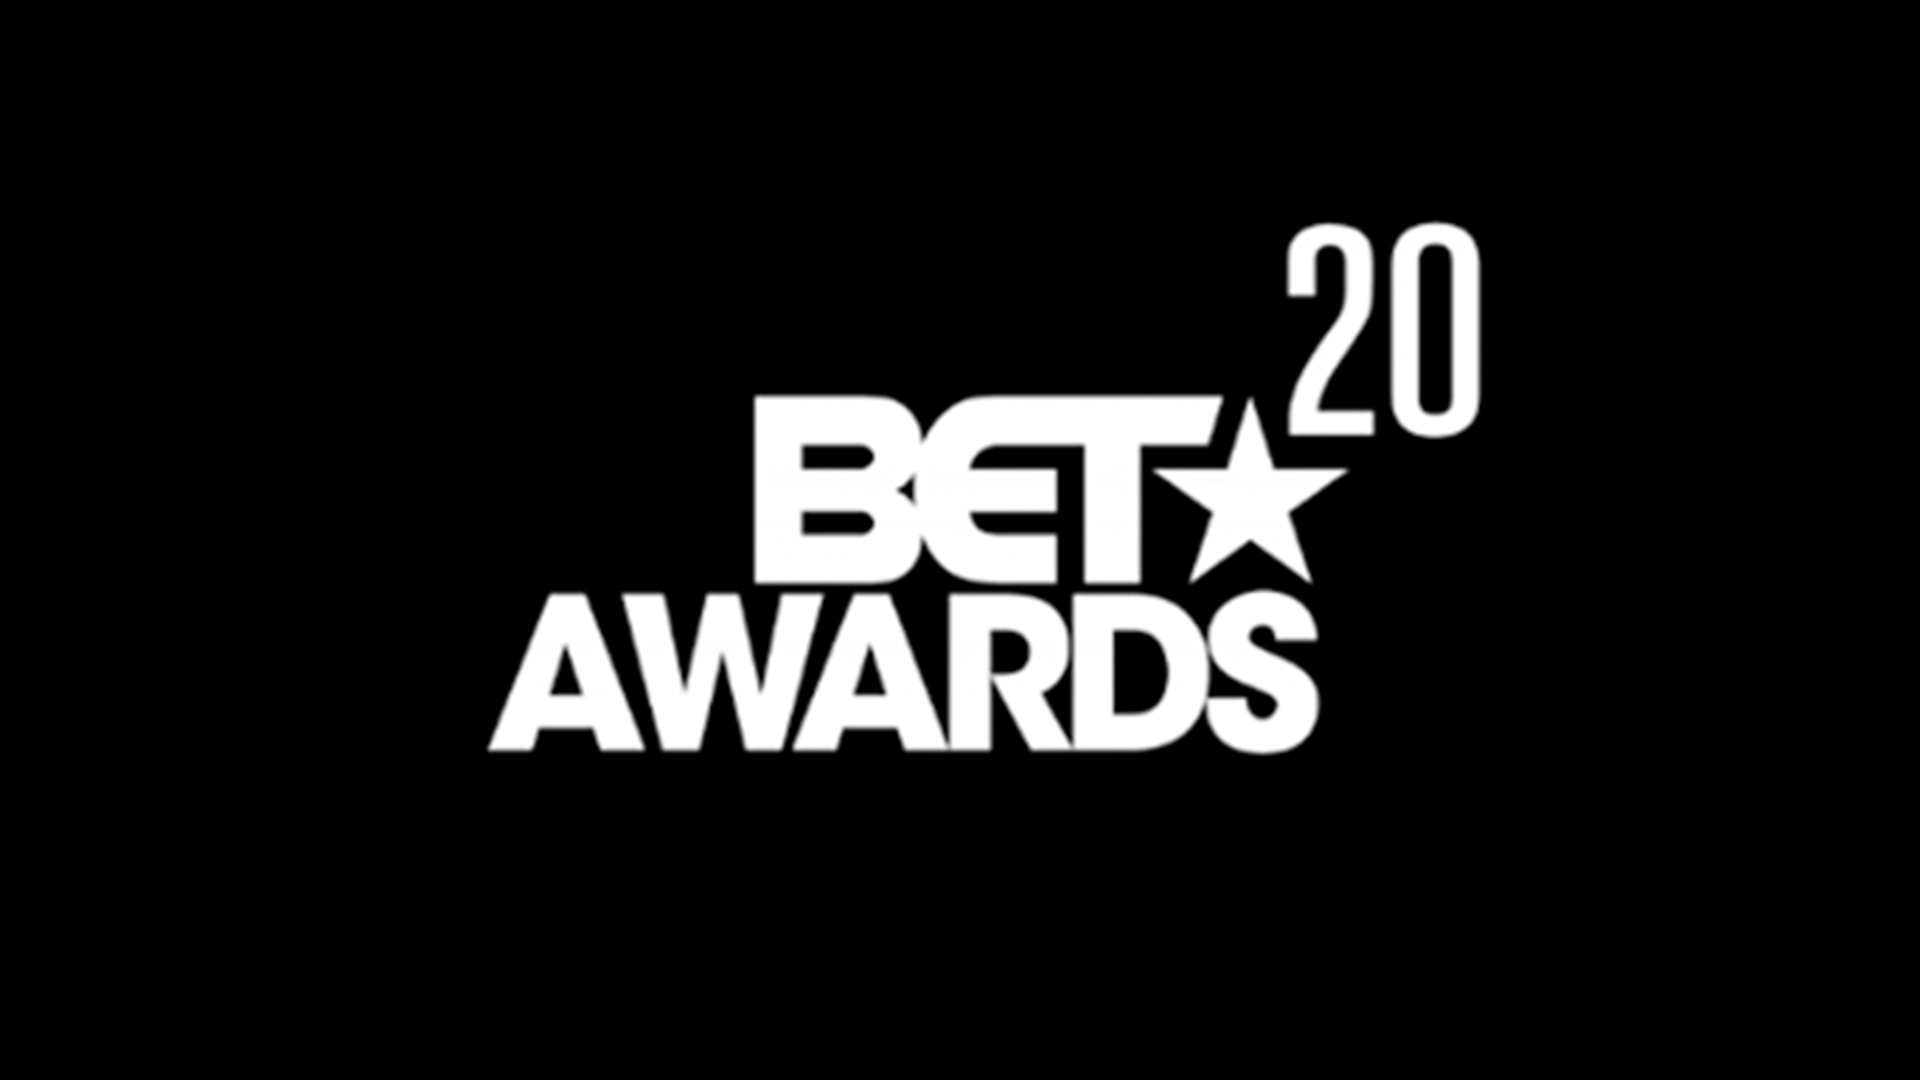 BET AWARDS 2020